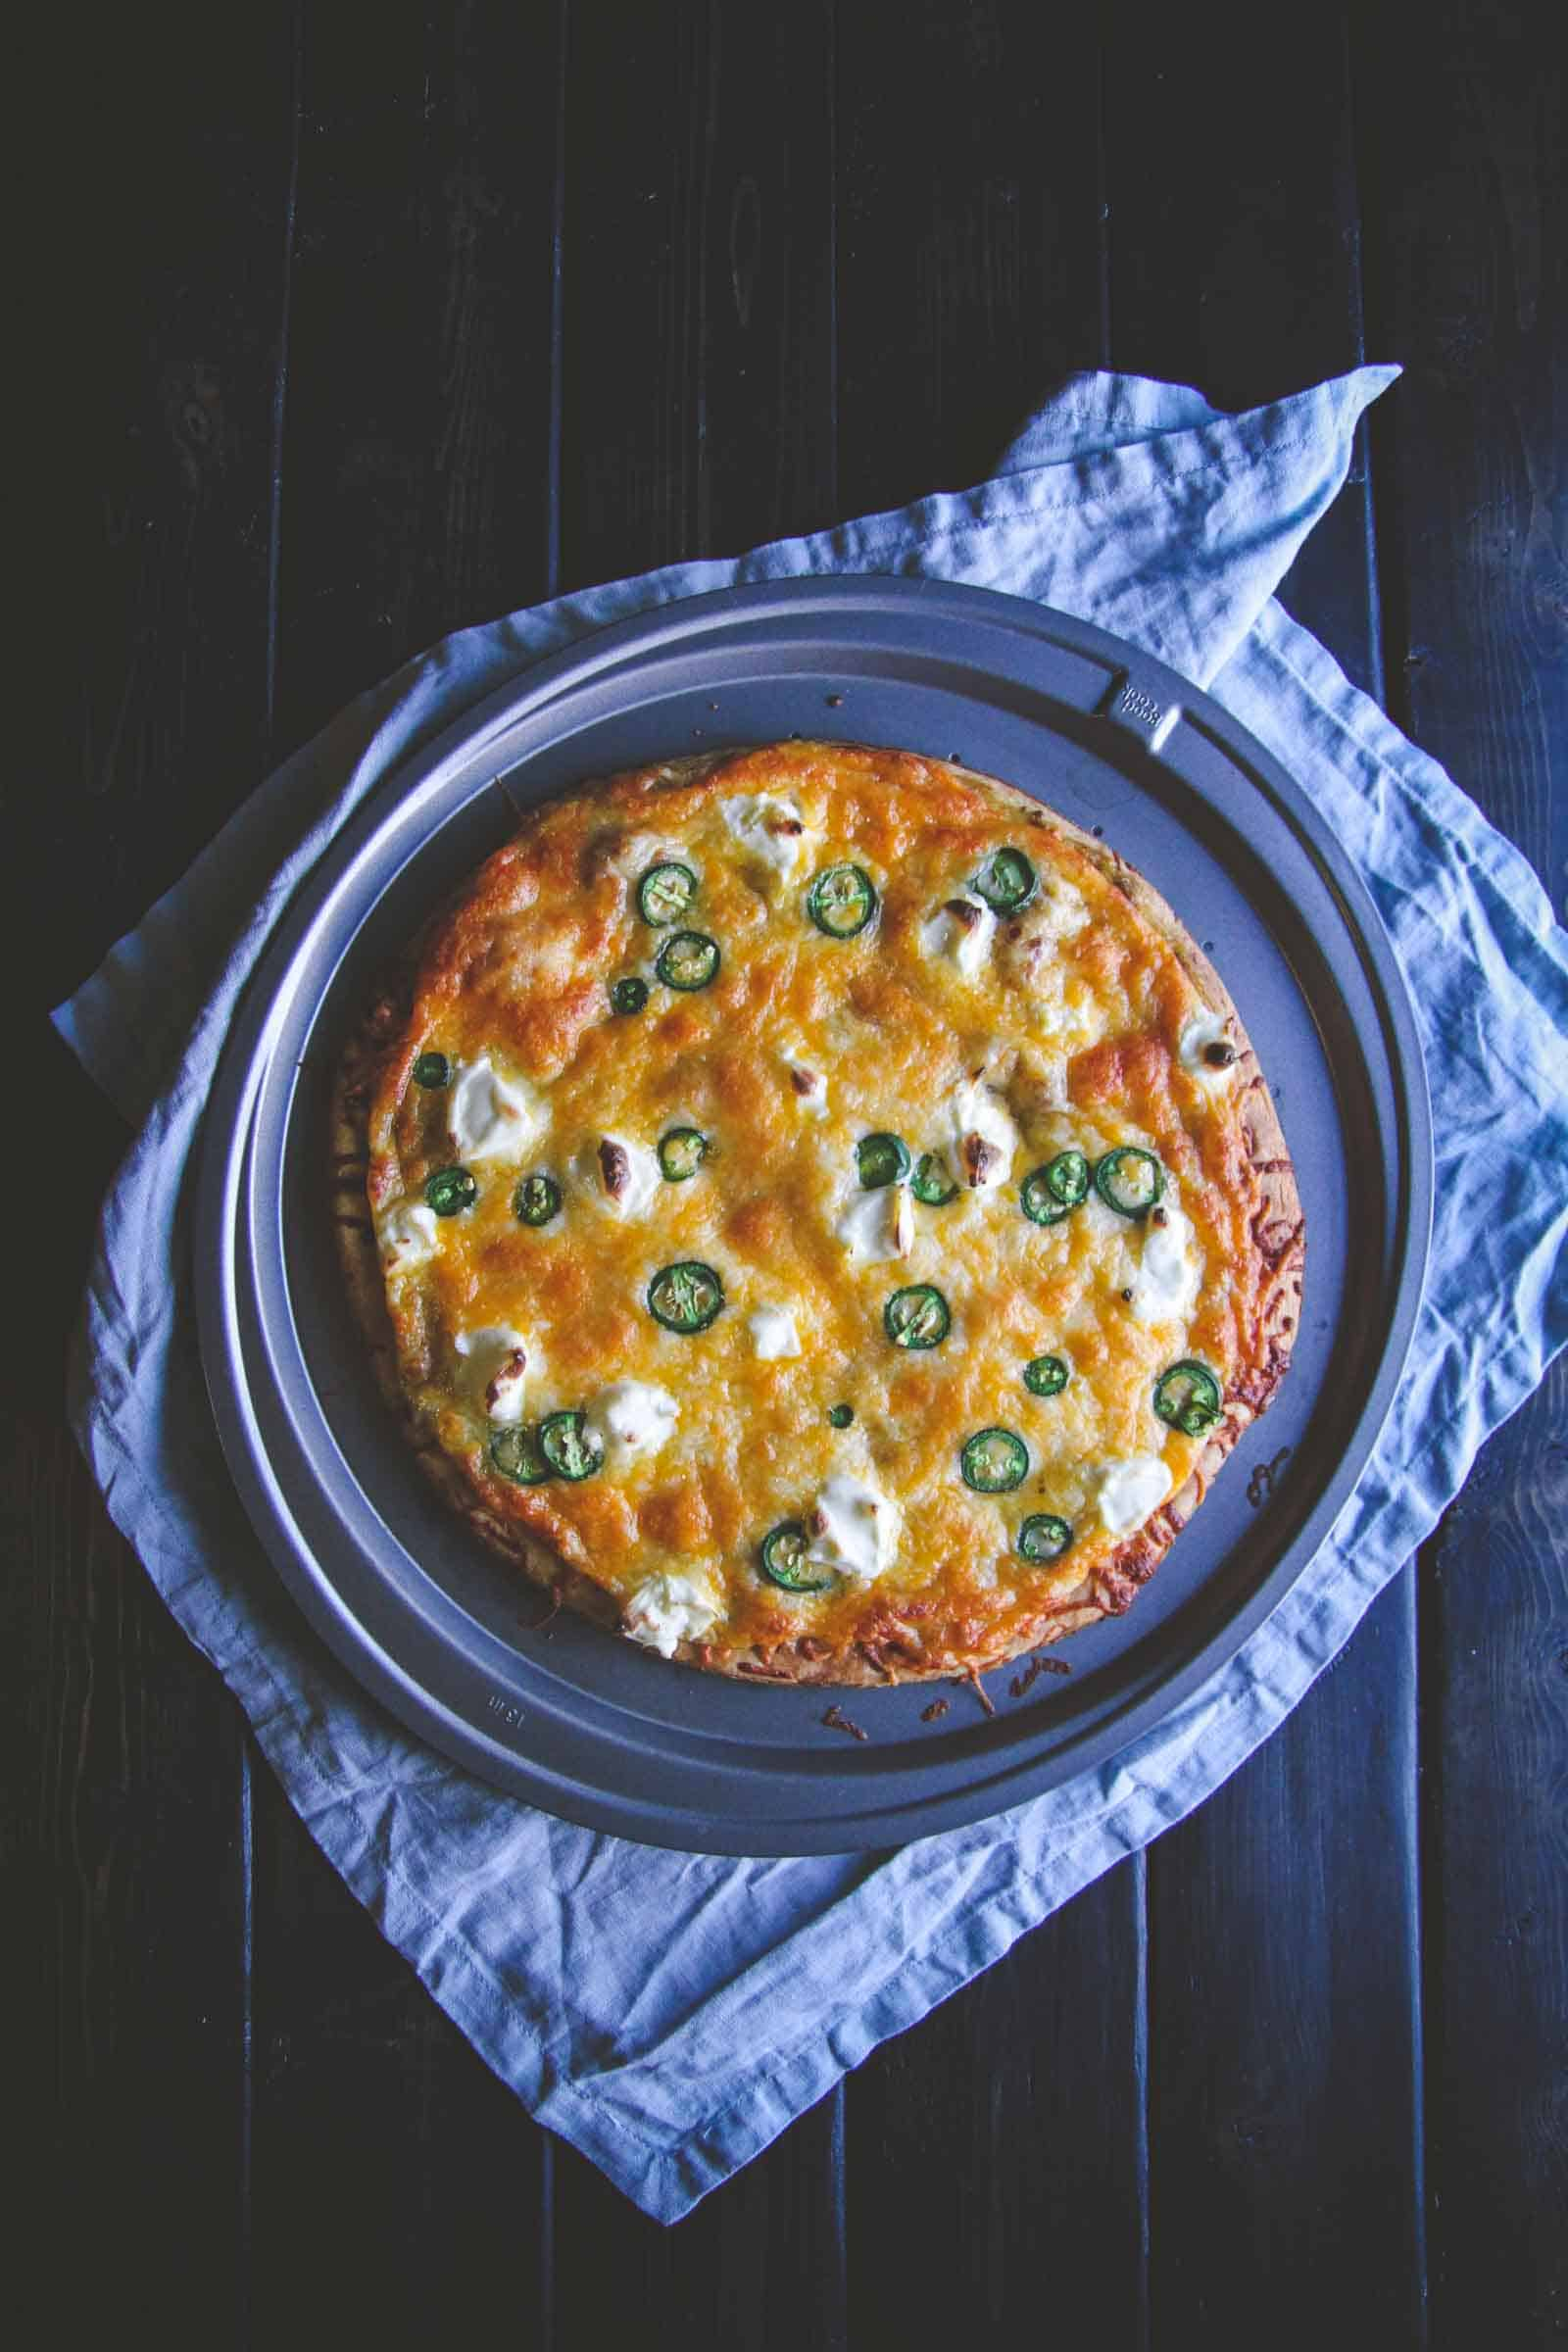 Perfect for a super easy 5 ingredient meatless Monday recipes. 5 ingredient jalapeno enchilada pizza from @sweepthi